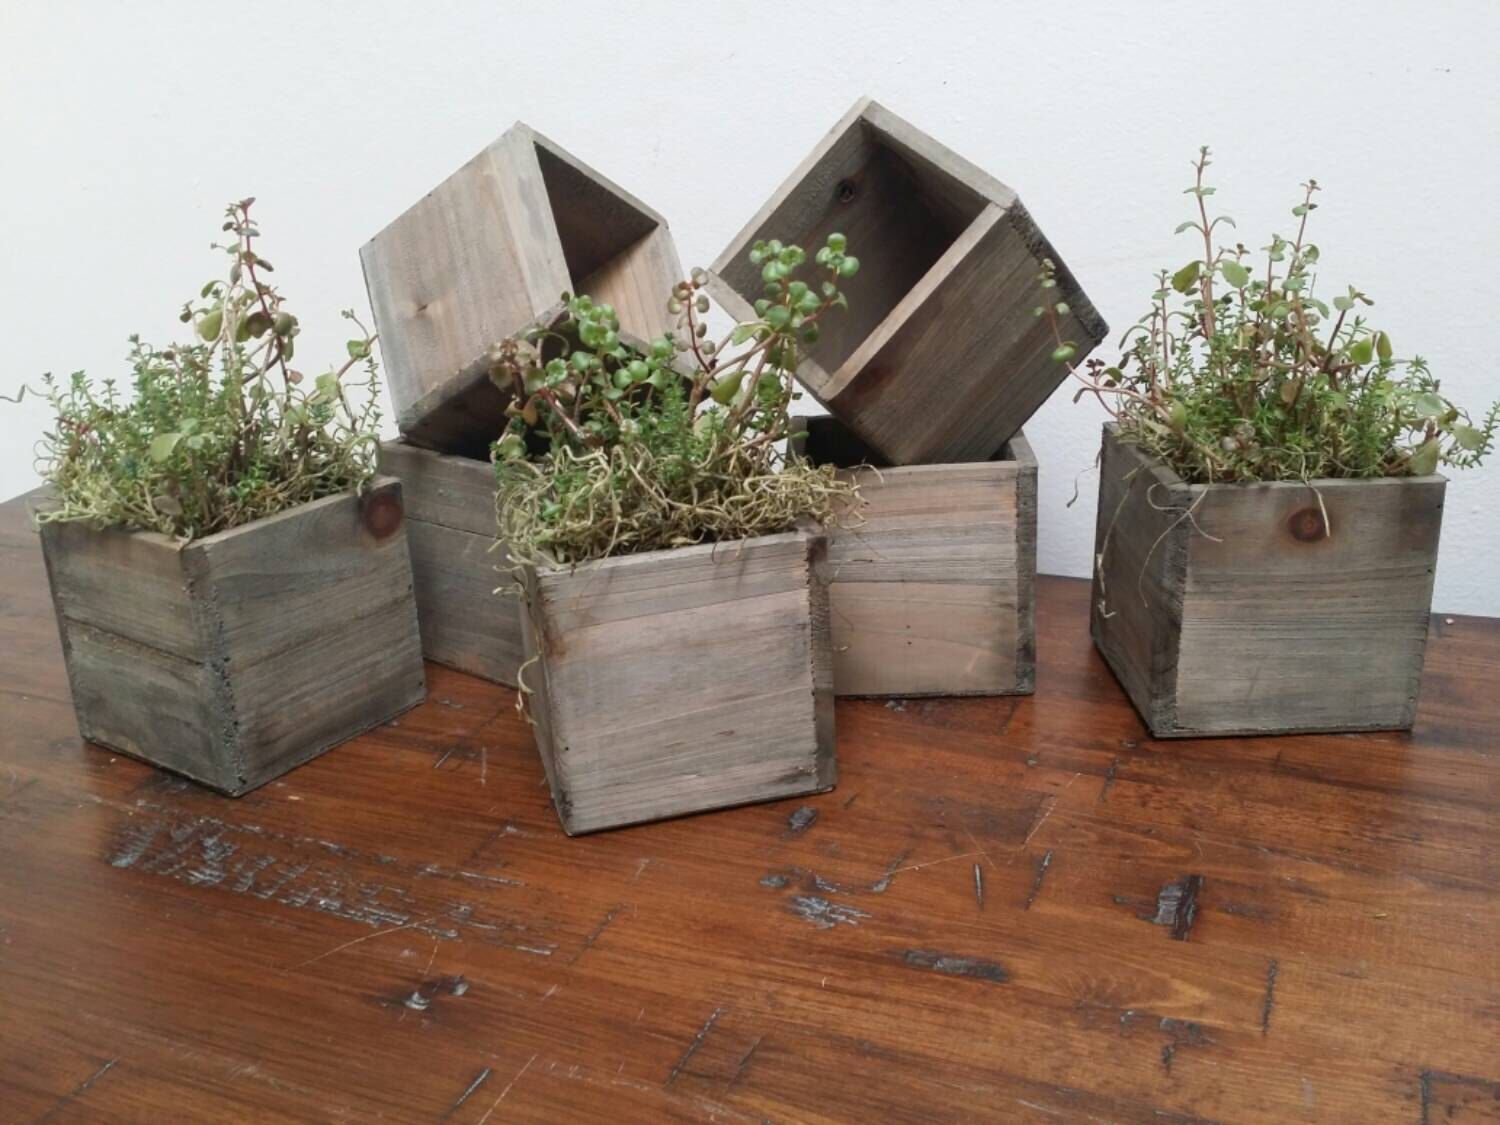 Reduced Reclaimed Wooden Planter Boxes Rustic Wooden Pots Indoor Gardening Rustic Home Decor Plants Rustic Planters Planter Boxes Planters